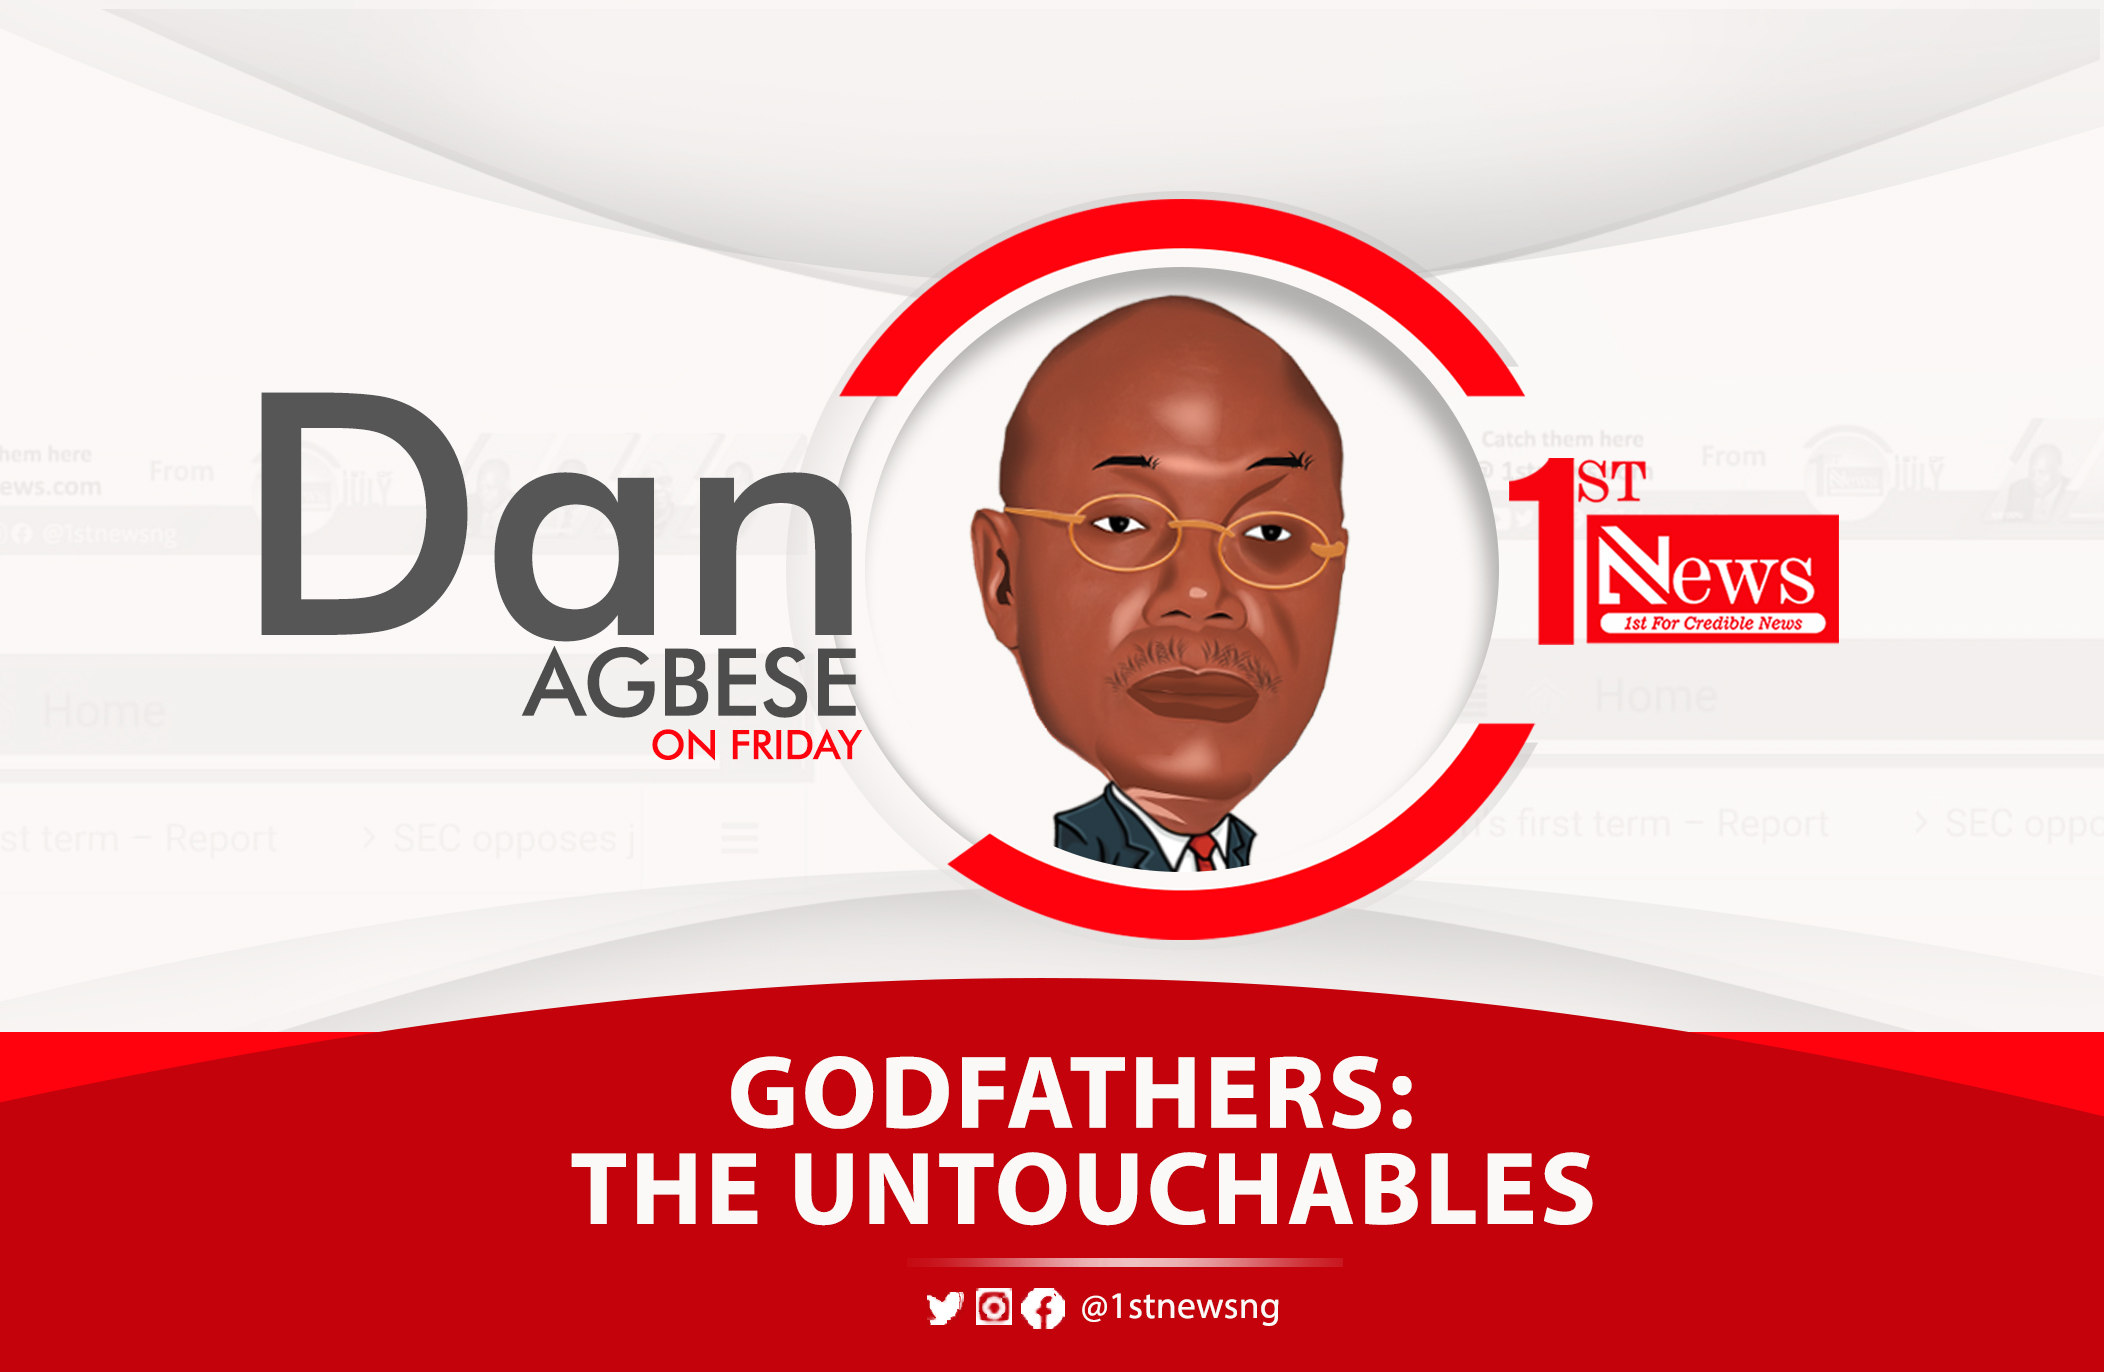 Godfathers: The untouchables – Dan Agbese